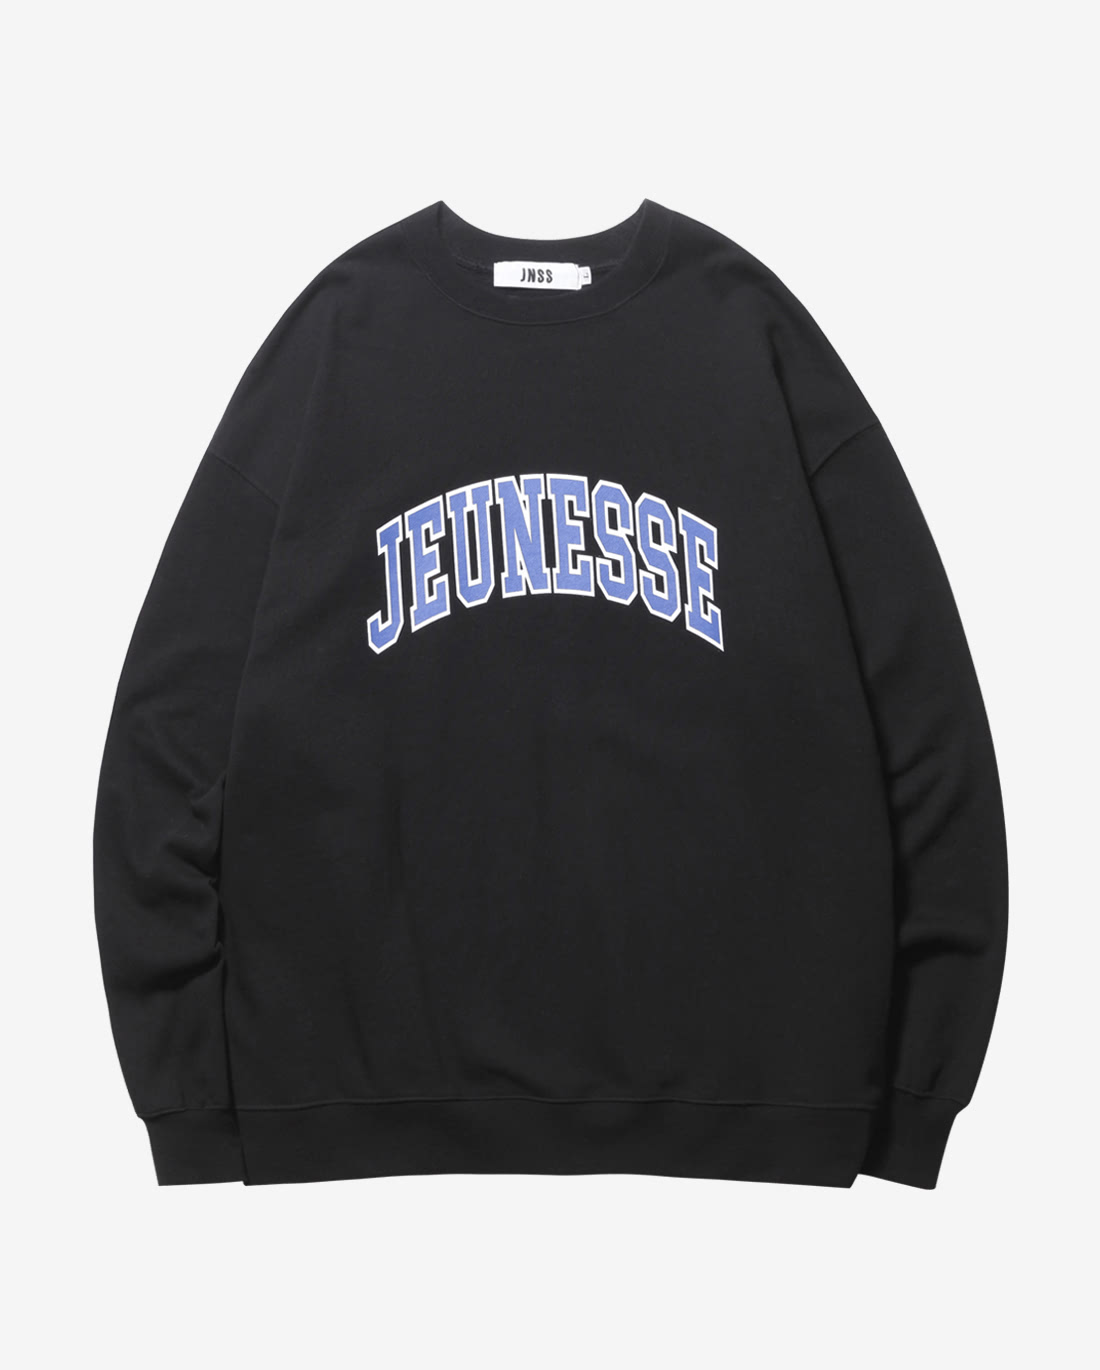 Signature Logo Sweatshirts Black (SS Version)